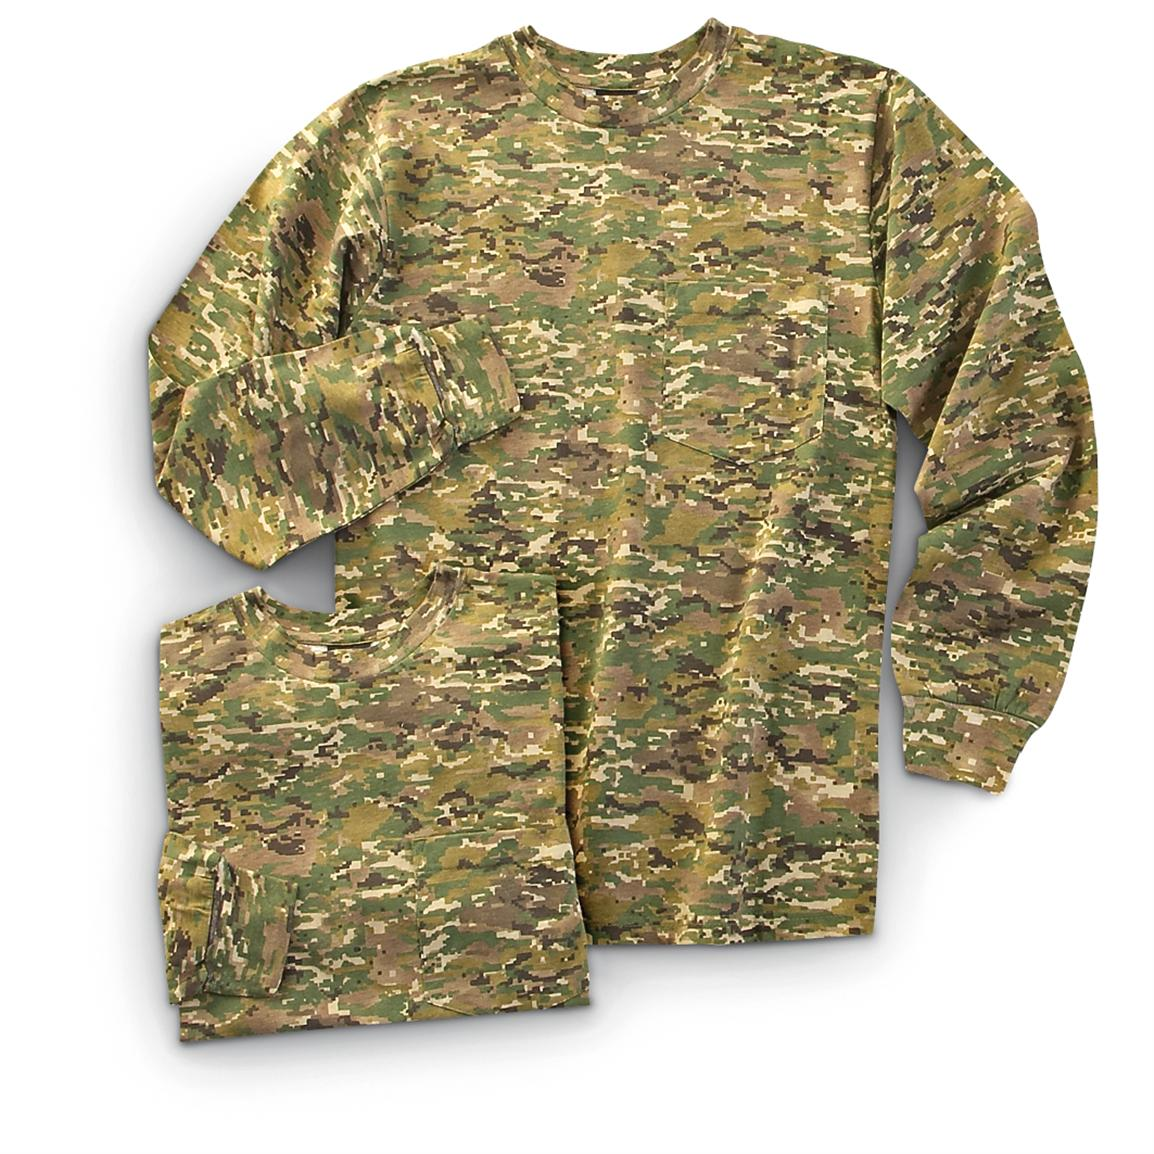 2 Military-style Long-sleeved Shirts, X-camo